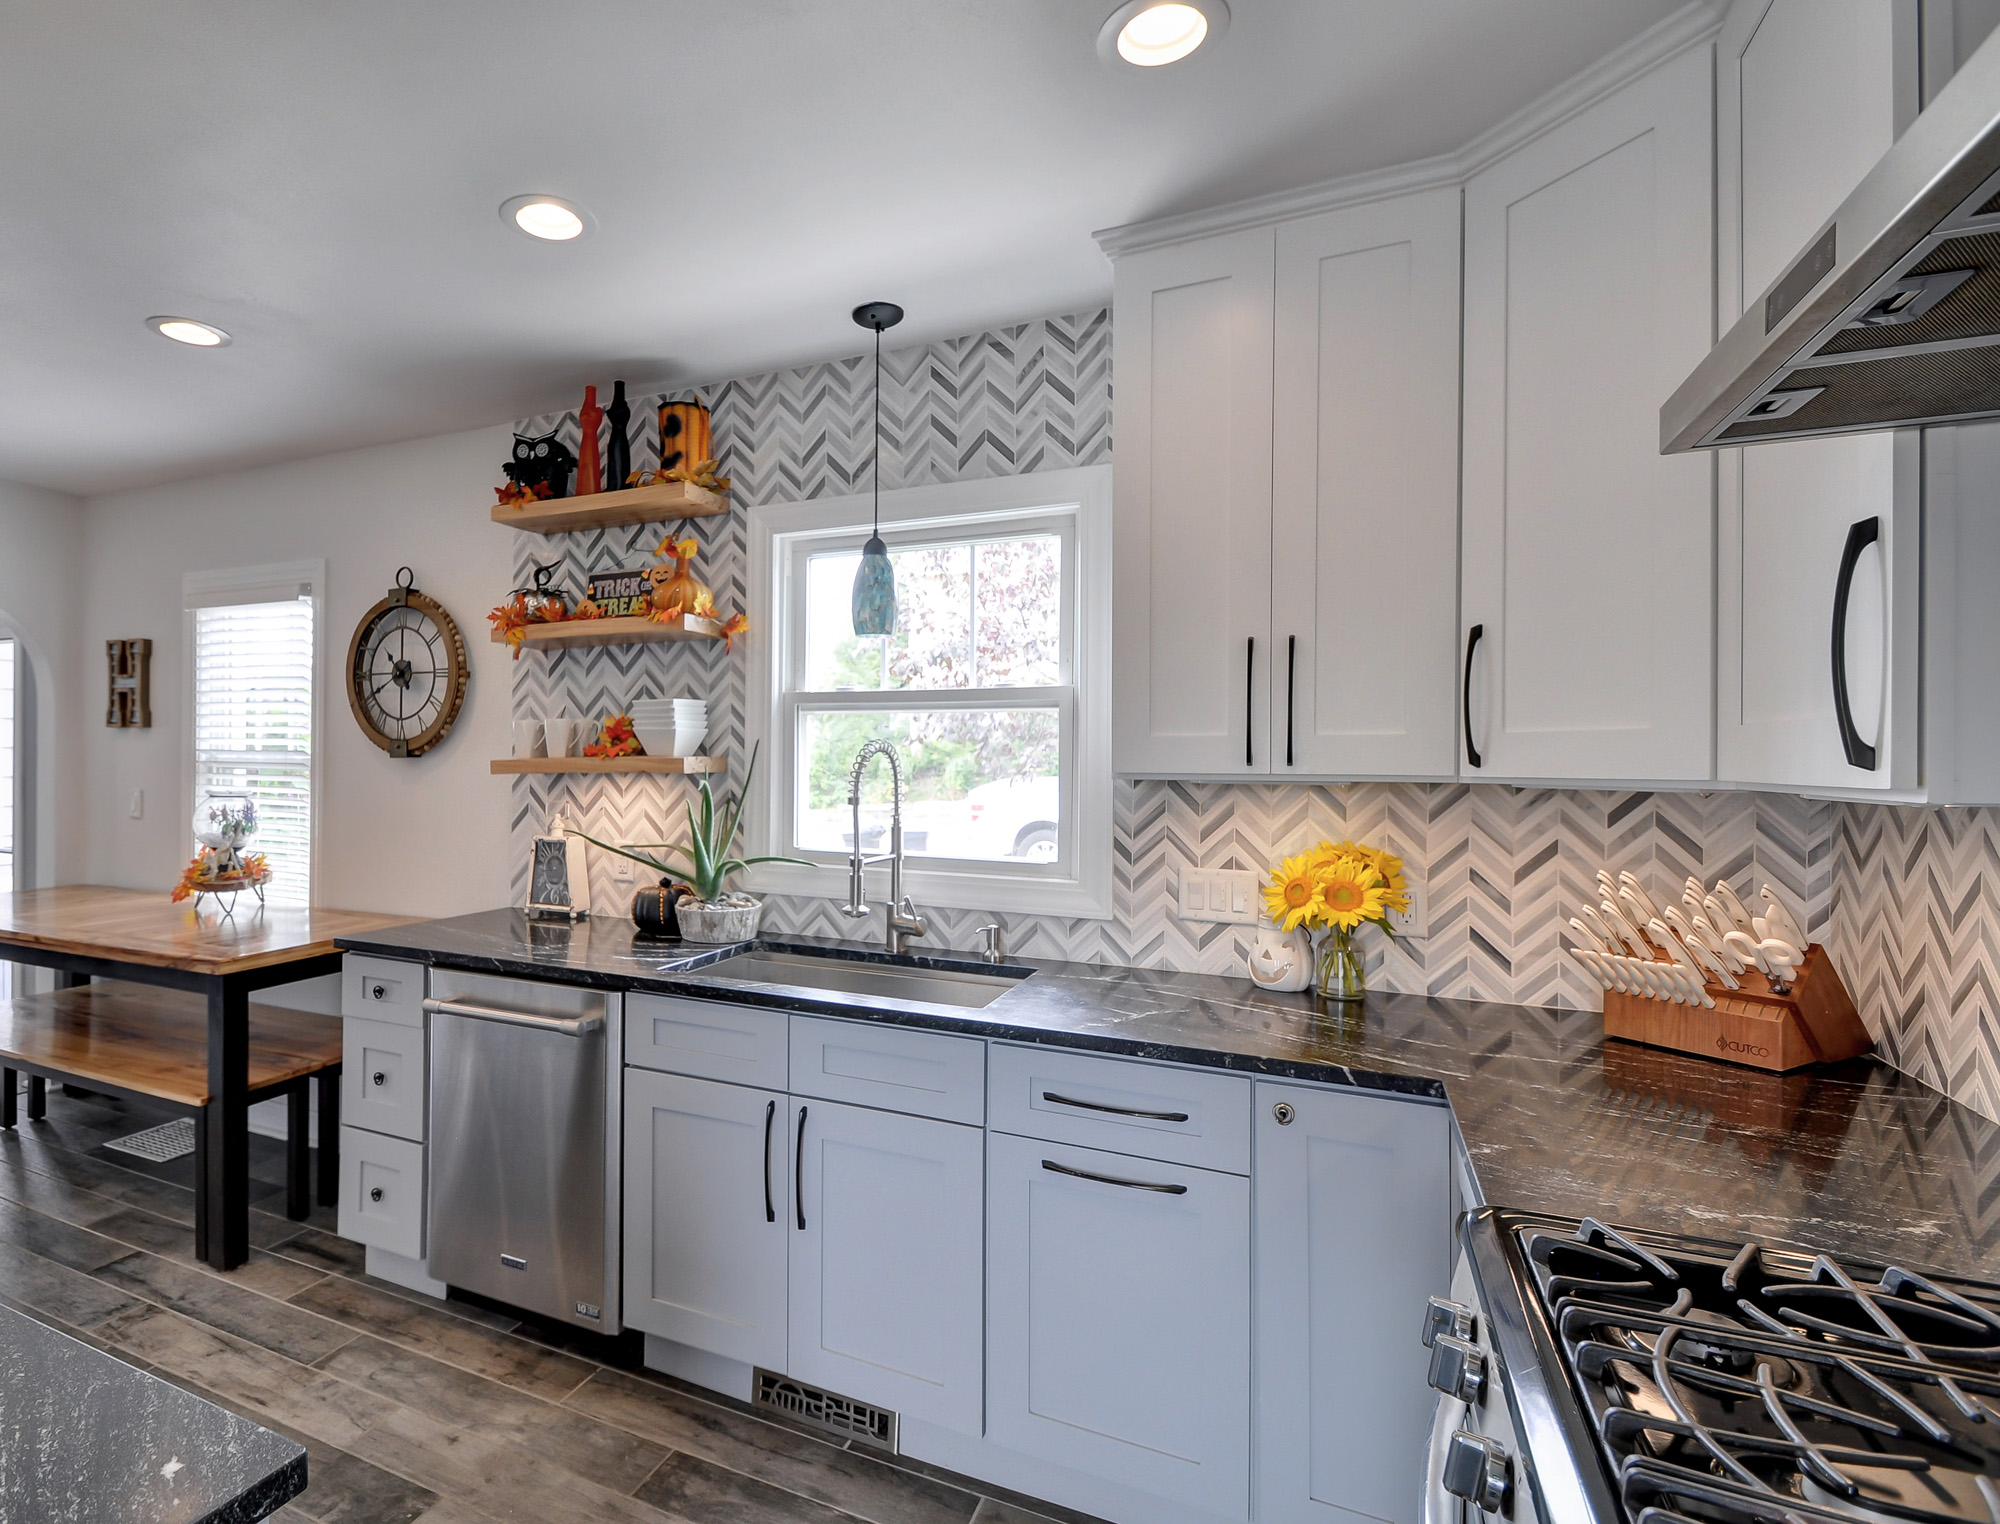 burlington, wi kitchen remodel | elite improvements